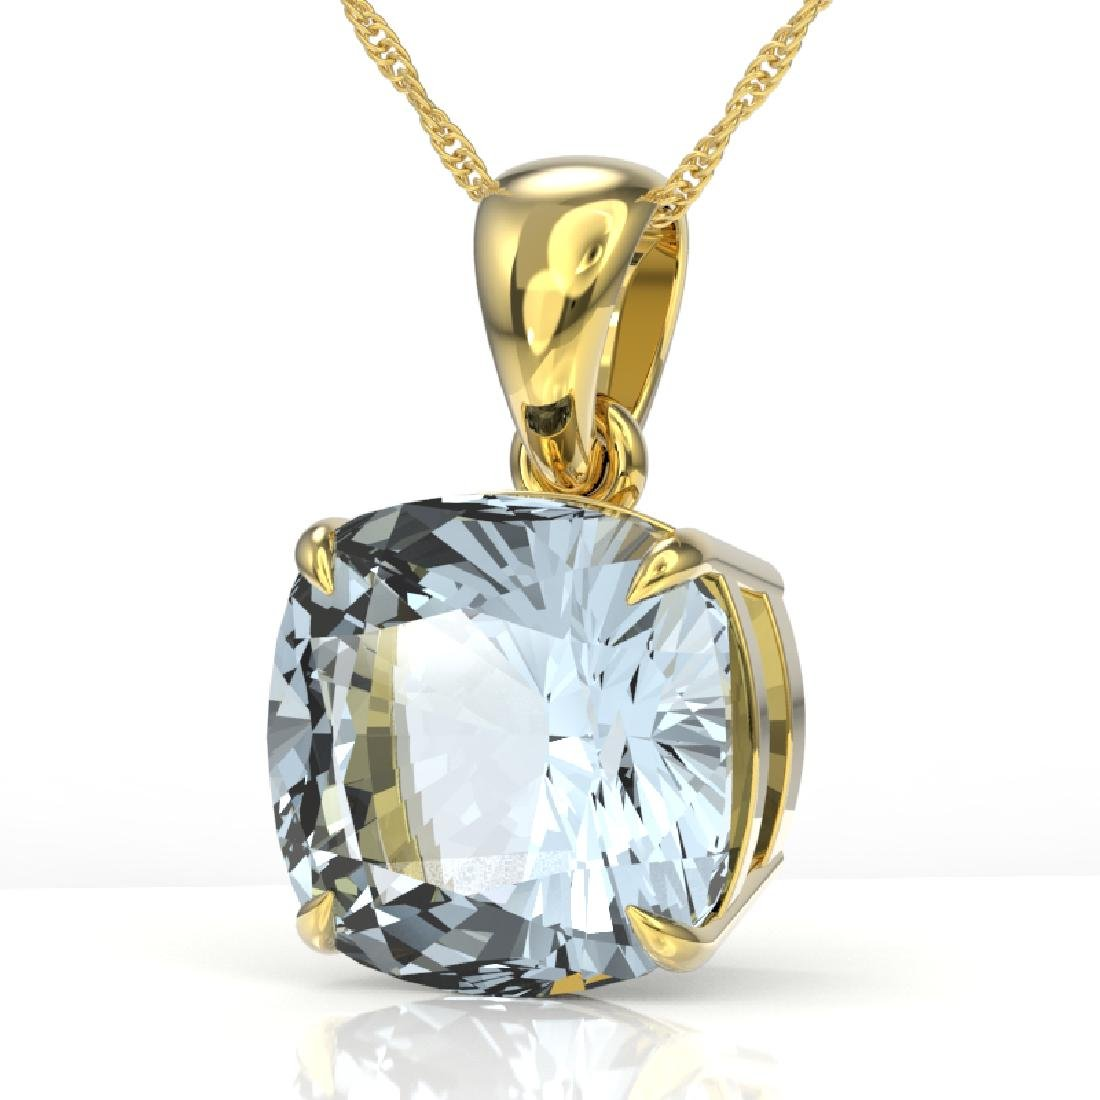 6 Cushion Cut Sky Blue Topaz Solitaire Necklace 18K